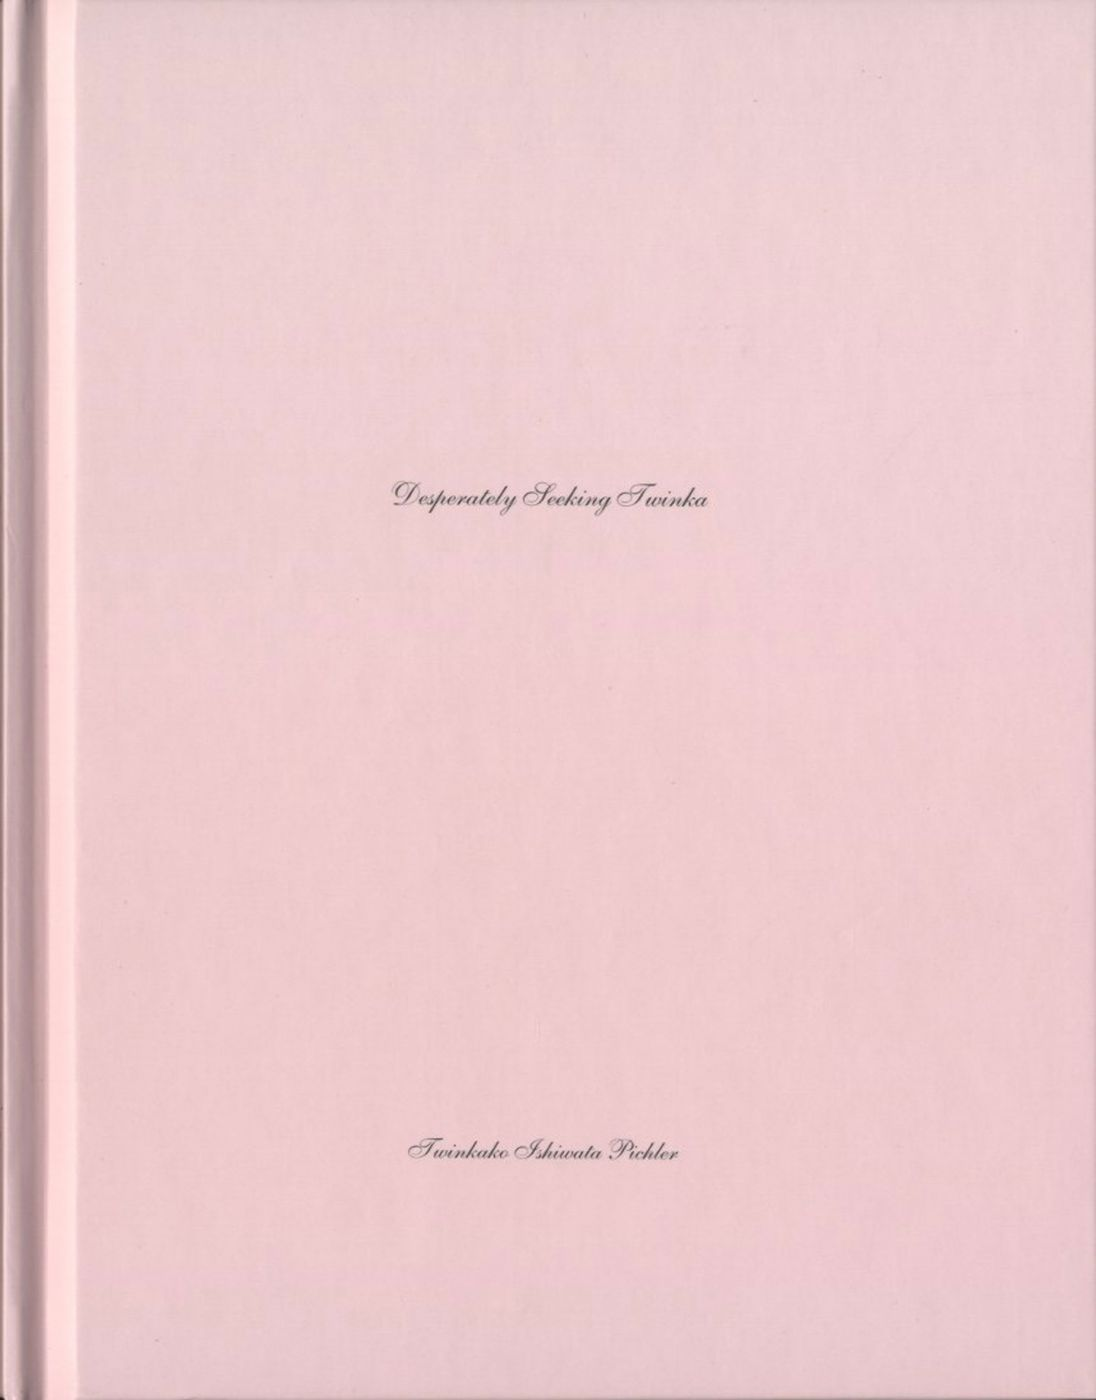 Twinkako Ishiwata-Pichler: Desperately Seeking Twinka (One Picture Book #36), Limited Edition (with Print)